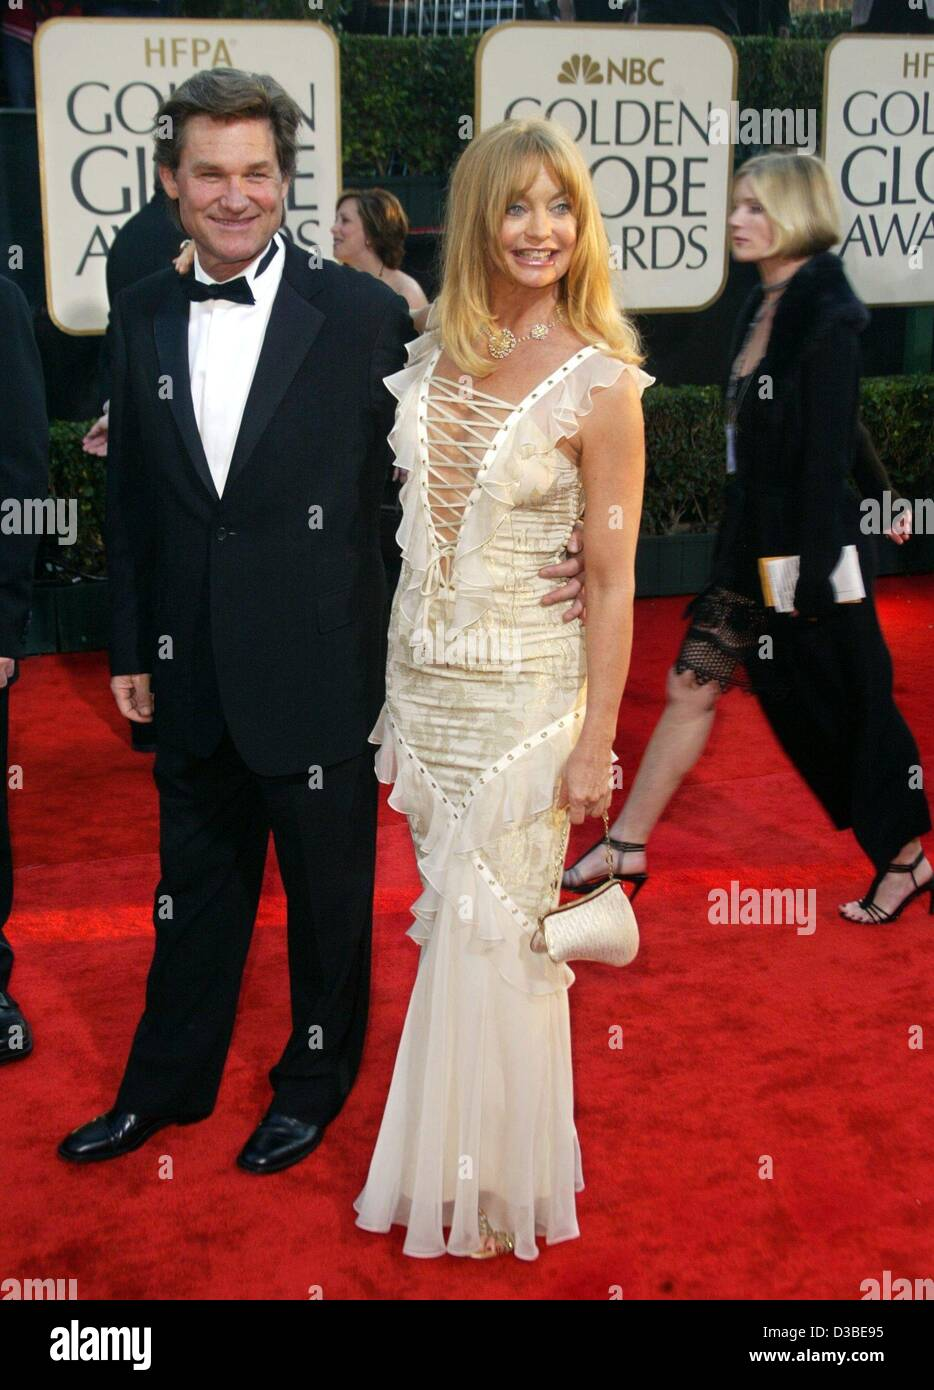 (dpa) - Hollywood couple Goldie Hawn and Kurt Russel arrive at the 60th Golden Globe Awards in Beverly Hills, 19 - Stock Image